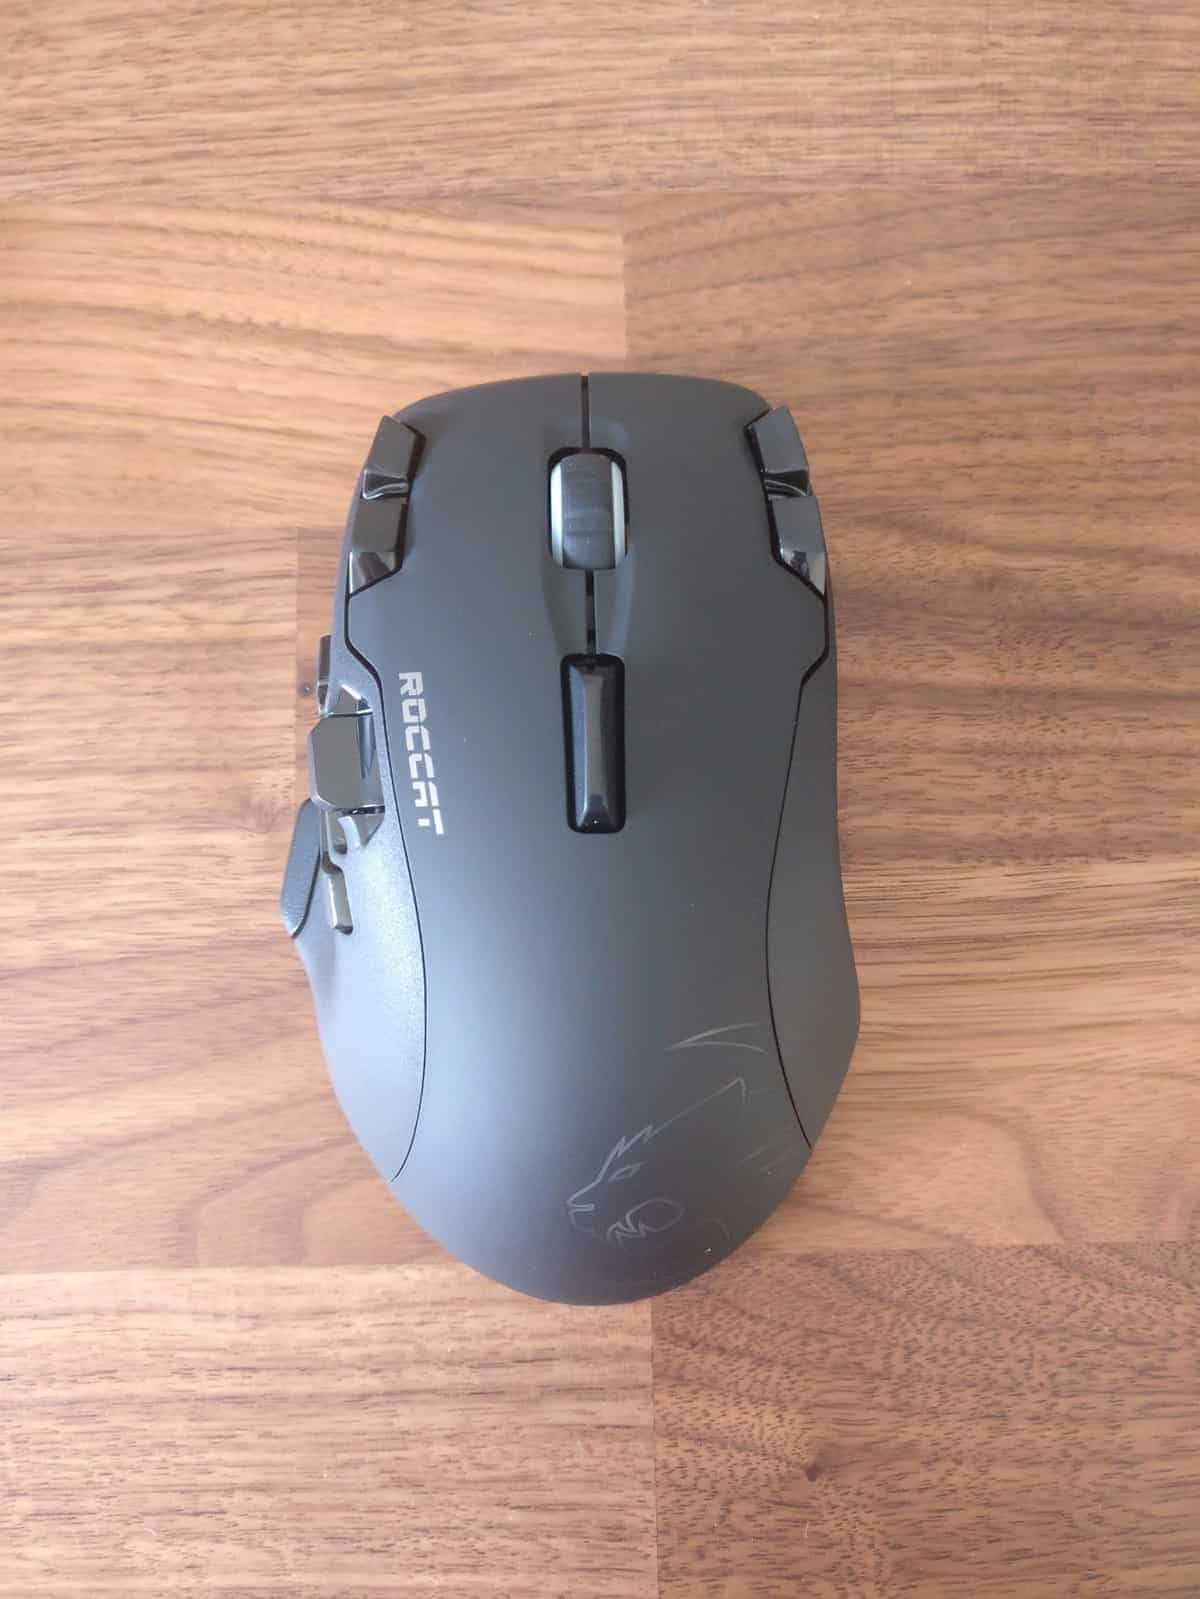 Roccat-Leadr-Photos20 Roccat Leadr Wireless Gaming Mouse Review